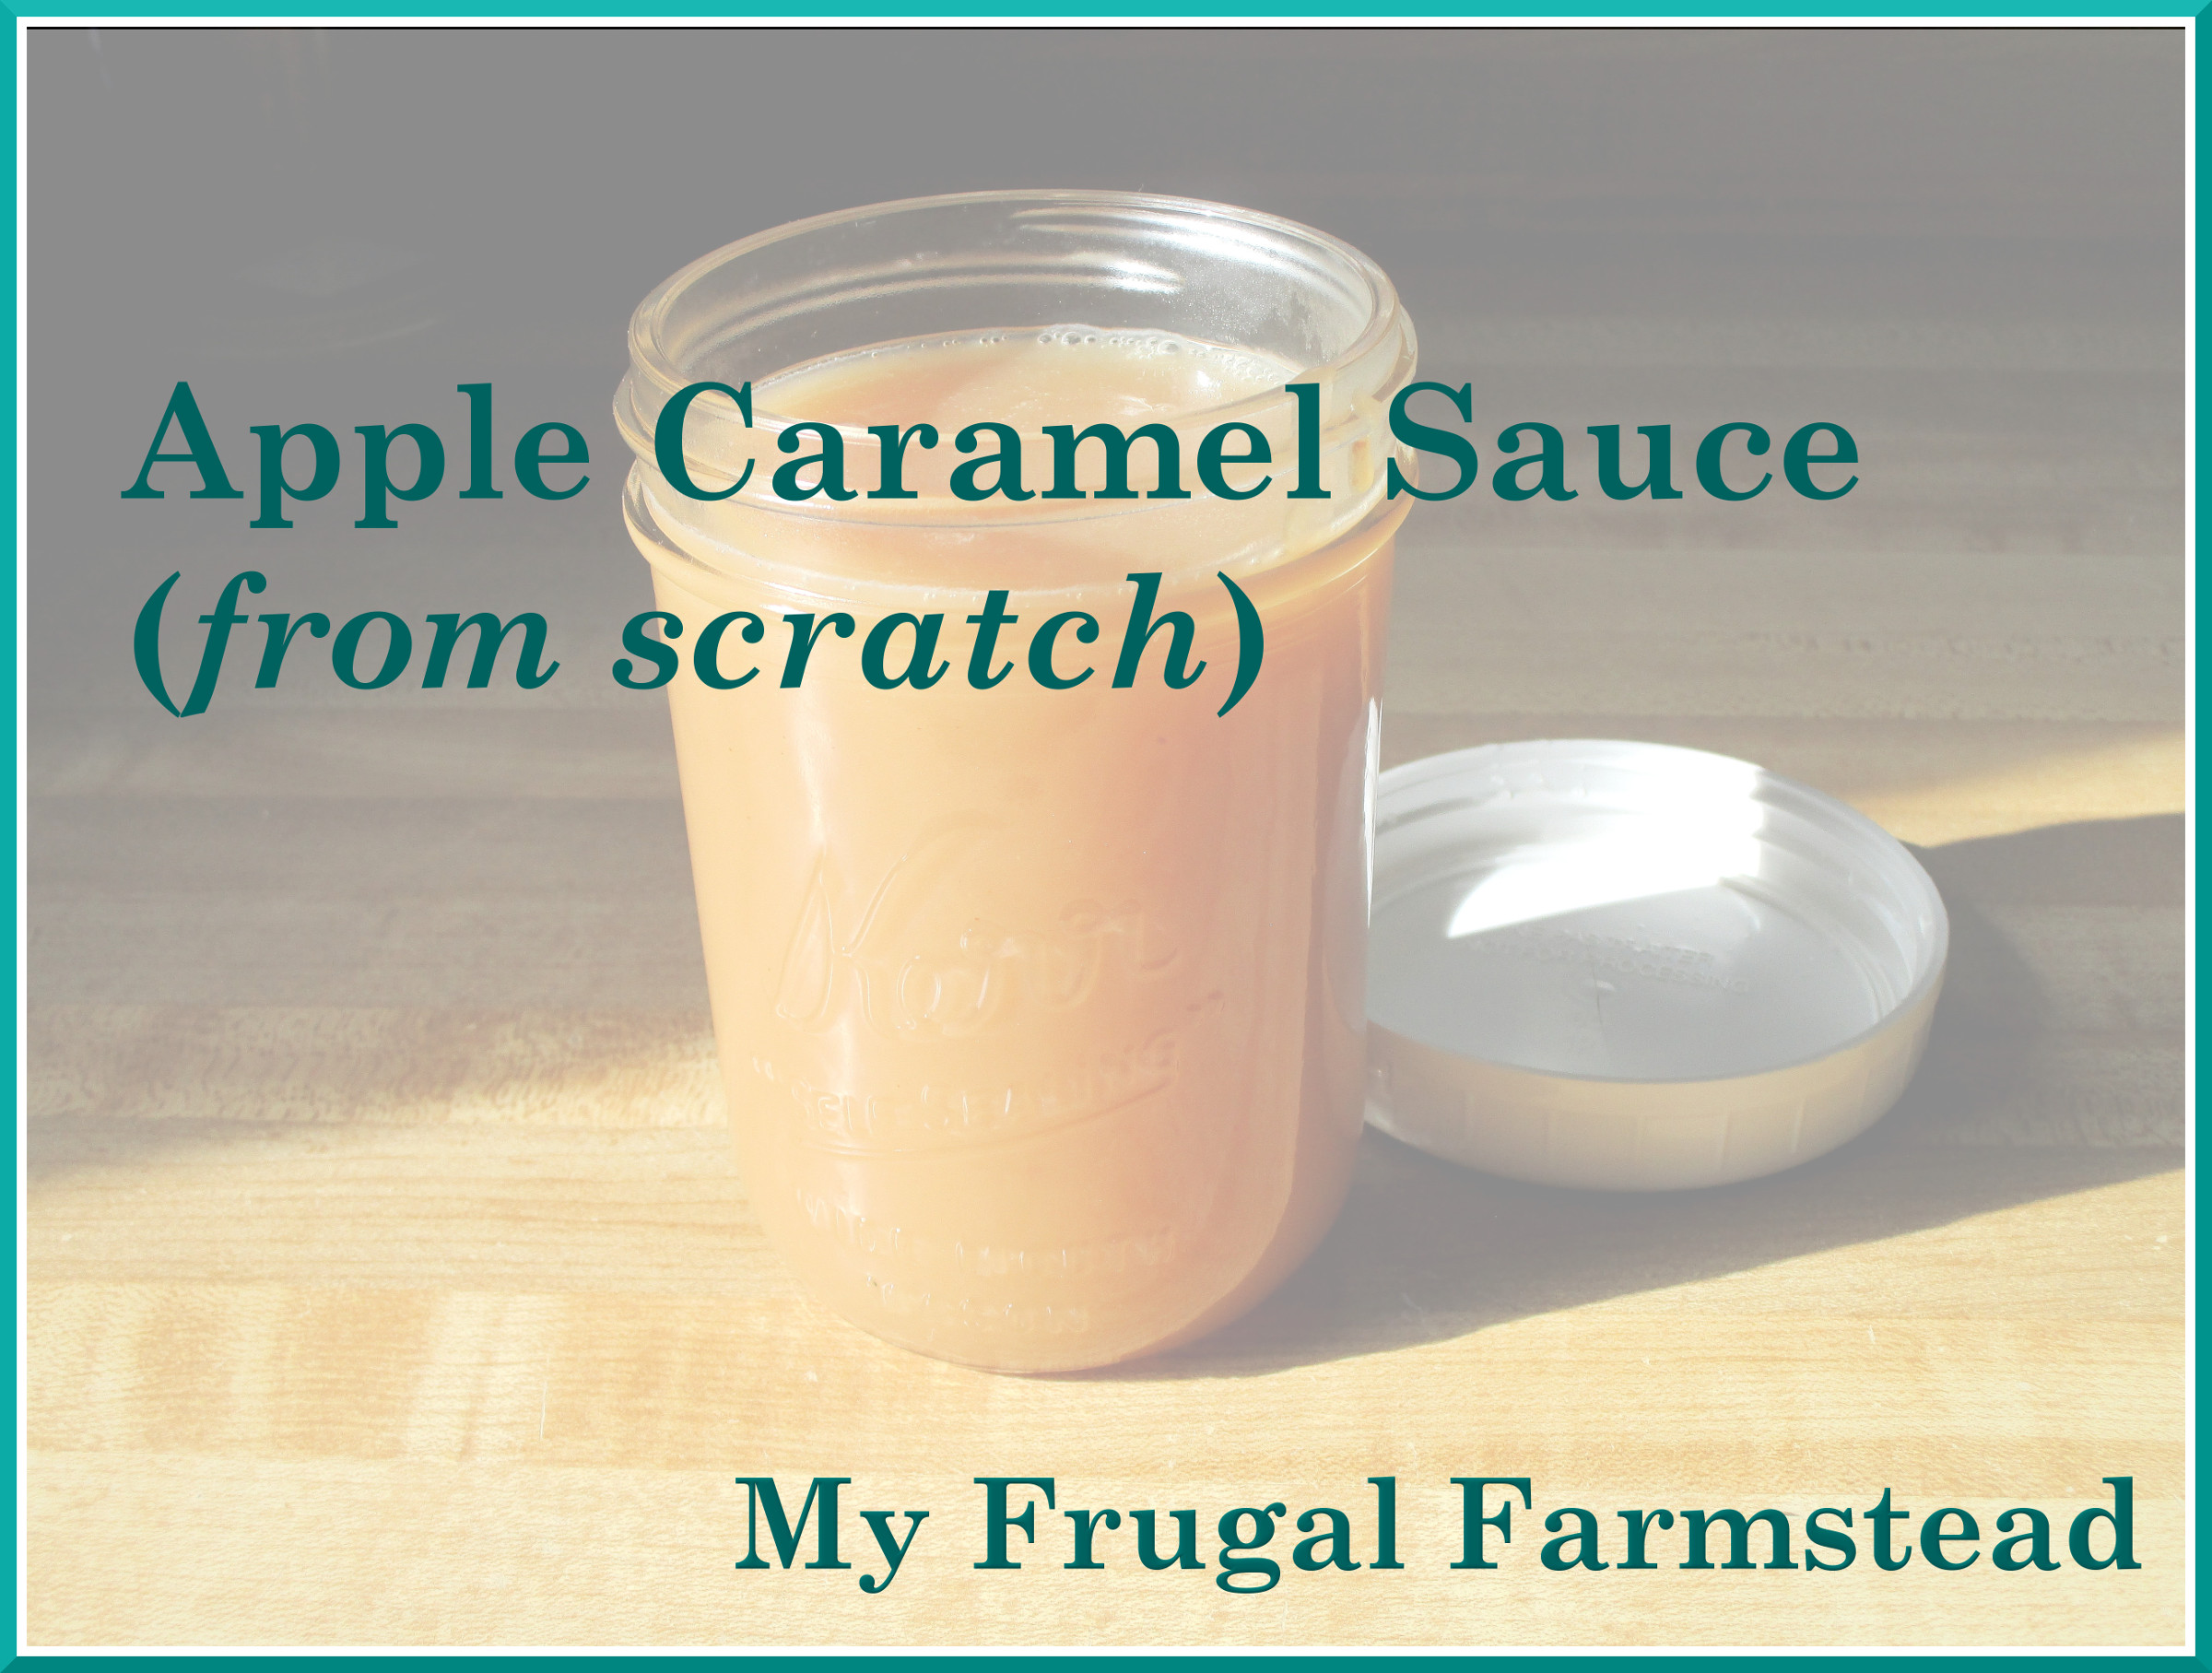 Apple Caramel Sauce (From Scratch)